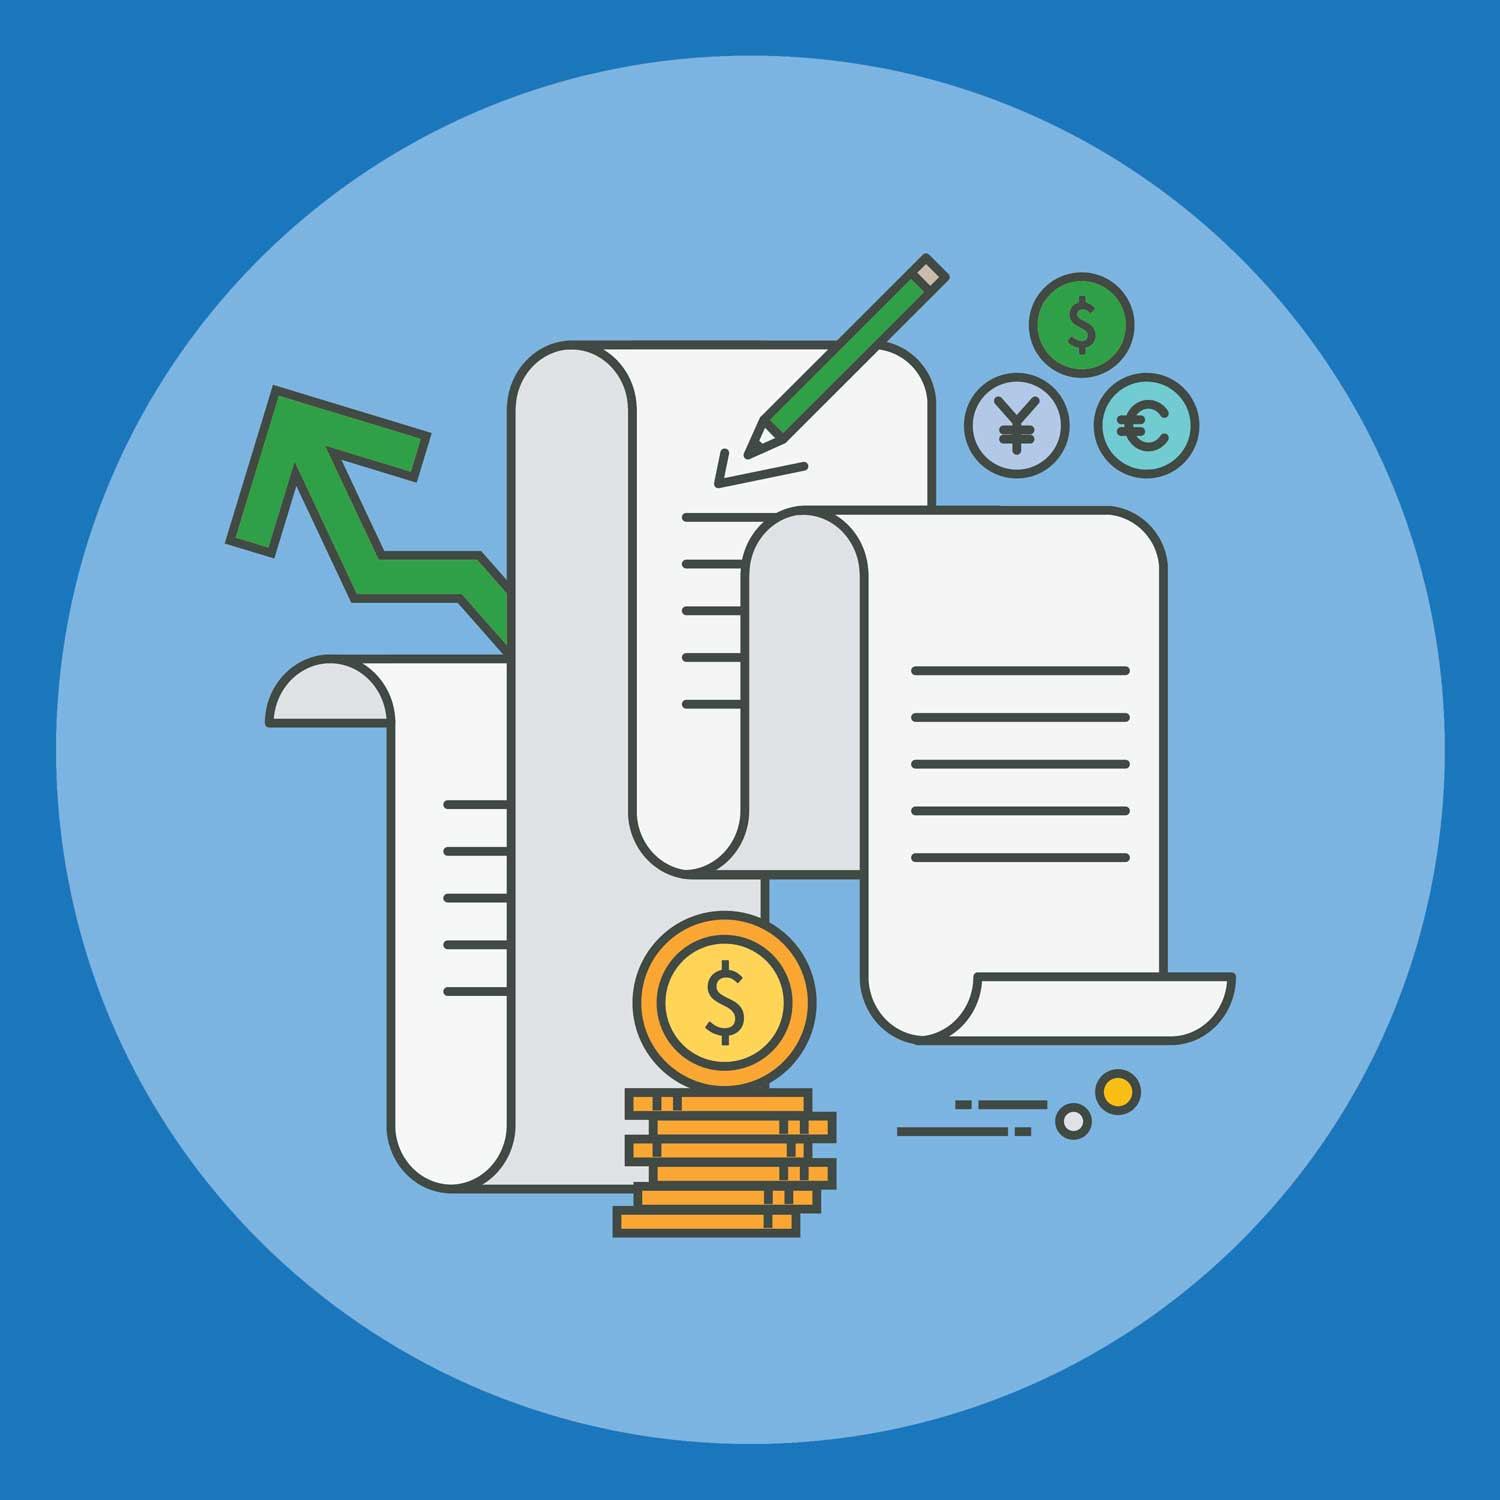 Setup - Setup payroll schedule (employee pay date, tax due date, and tax file deadlines), setup ACH direct withdrawal for employers tax payments and employees direct deposit, setup client and employee portal for access to payroll system.